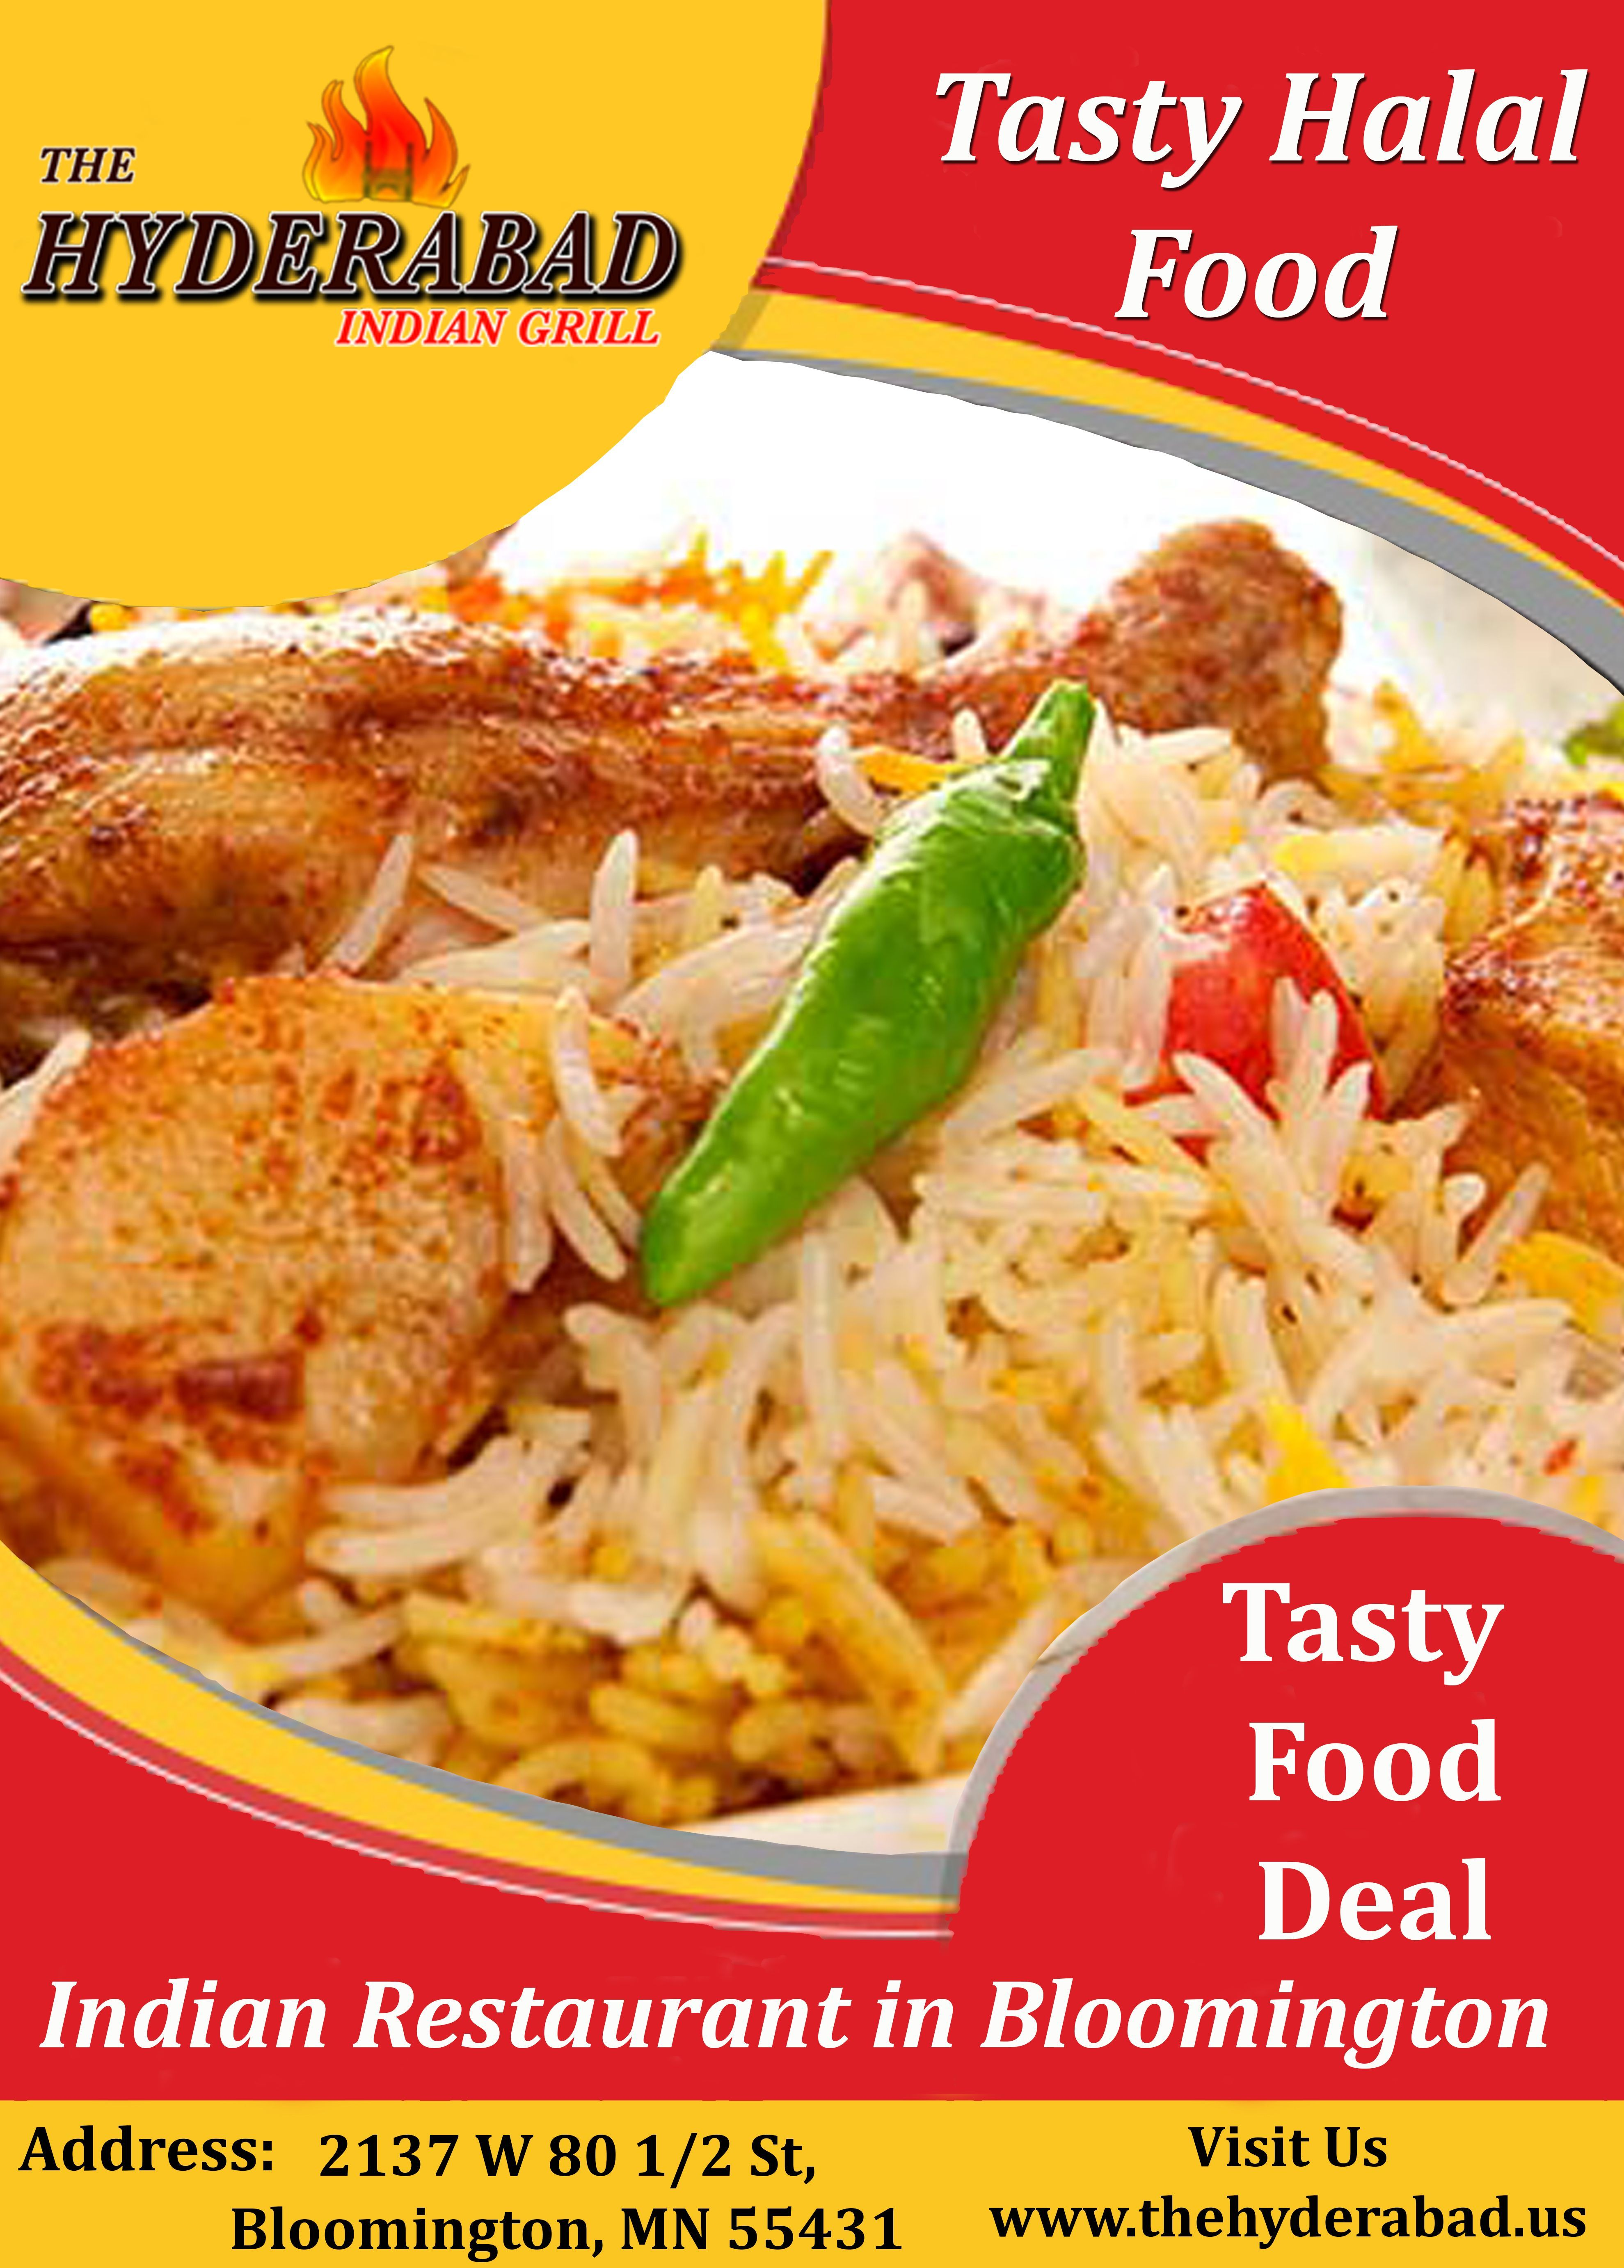 Hyderabad Us Restaurant Has Best Indian Food Catering Services And Gives Delivery As Best In Bloom Indian Food Catering Indian Food Recipes Tandoori Restaurant